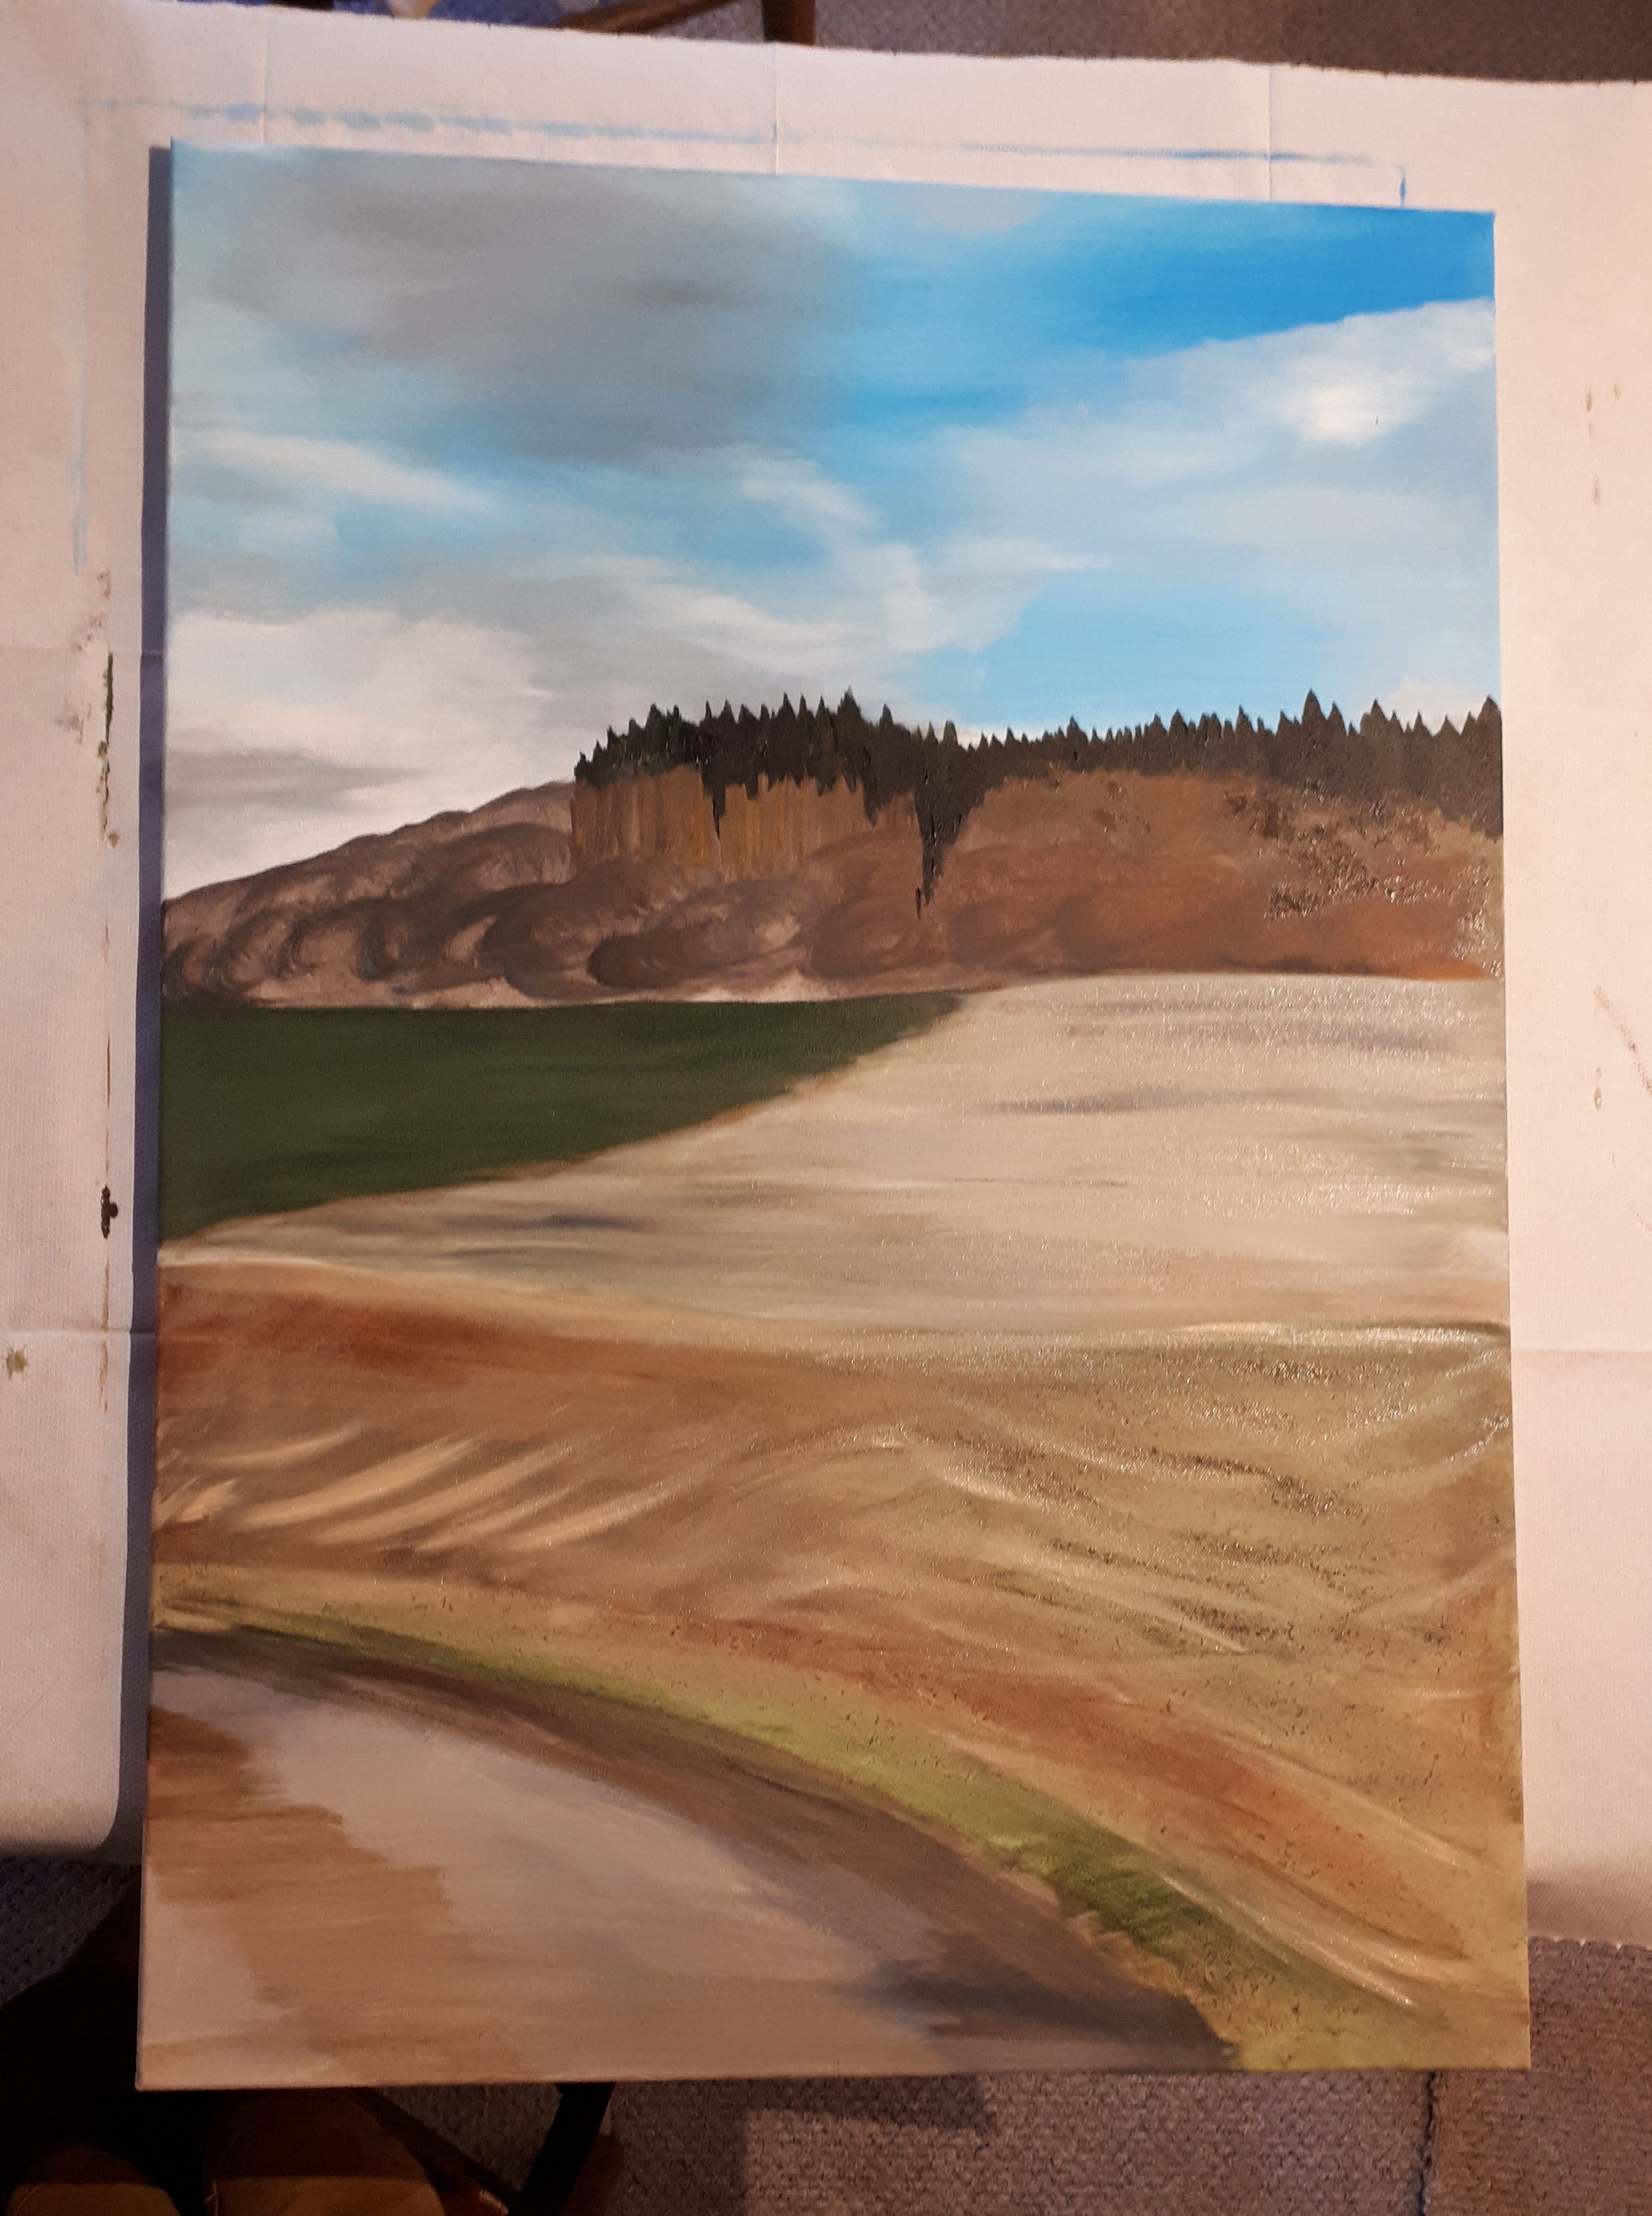 A1 landscape picture work in progress by Alice Draws the Line